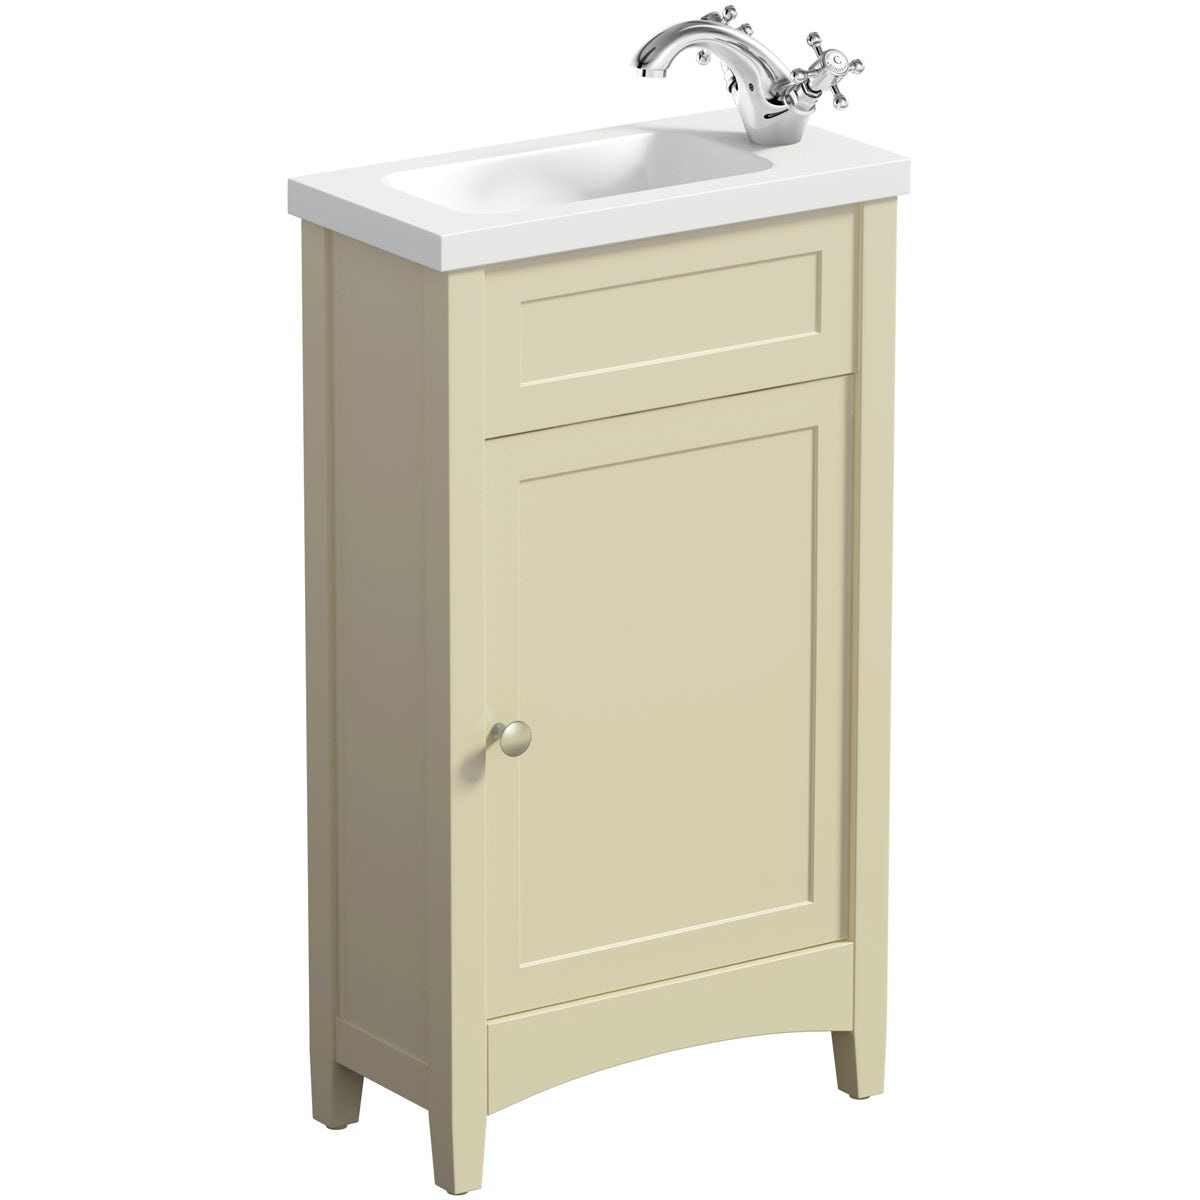 The Bath Co. Camberley satin ivory cloakroom vanity with basin 450mm